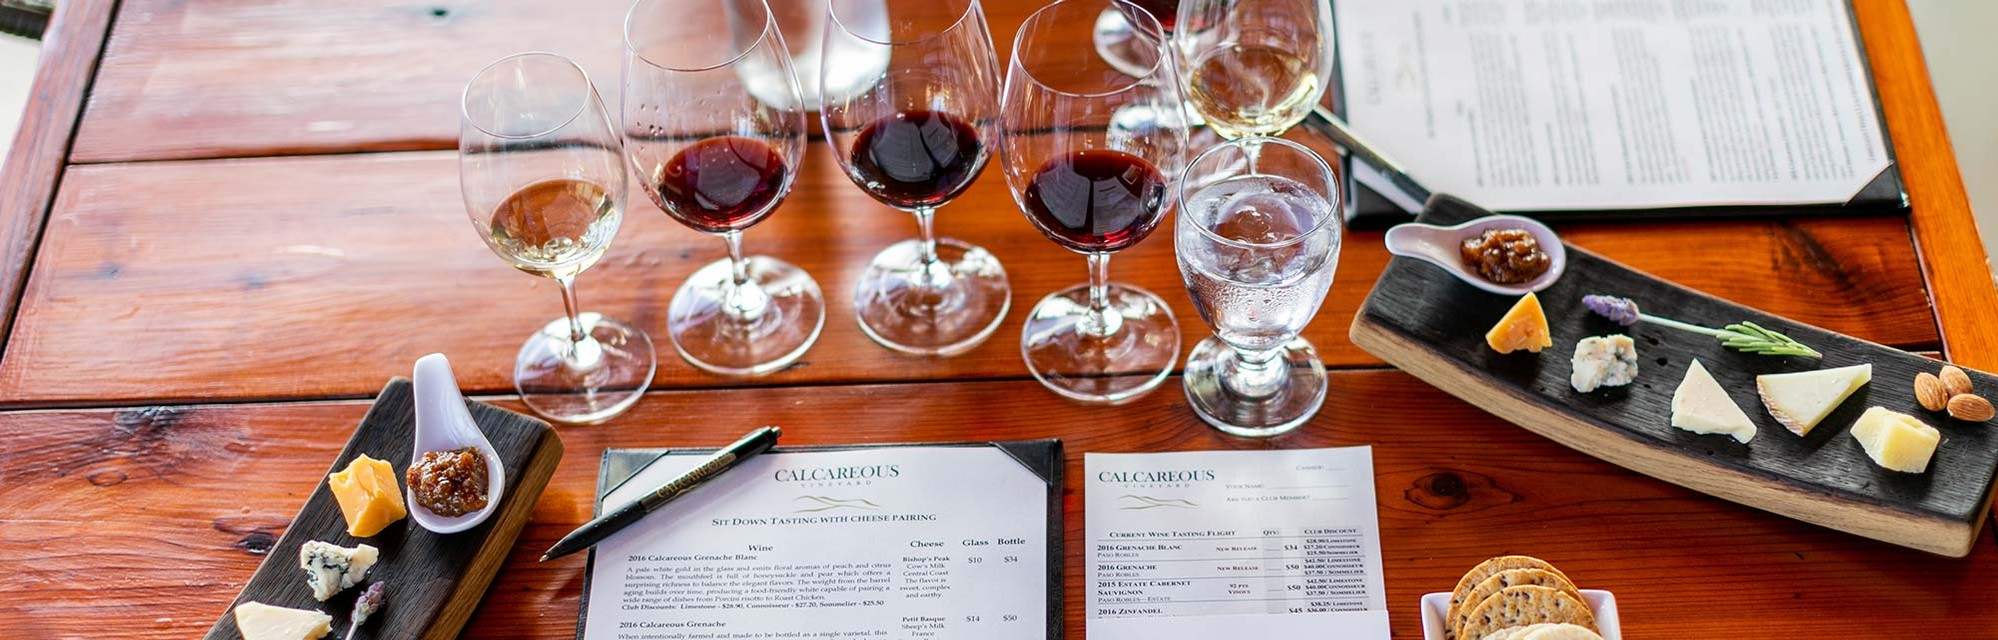 Wine tasting at Calcareous Vineyard in Paso Robles